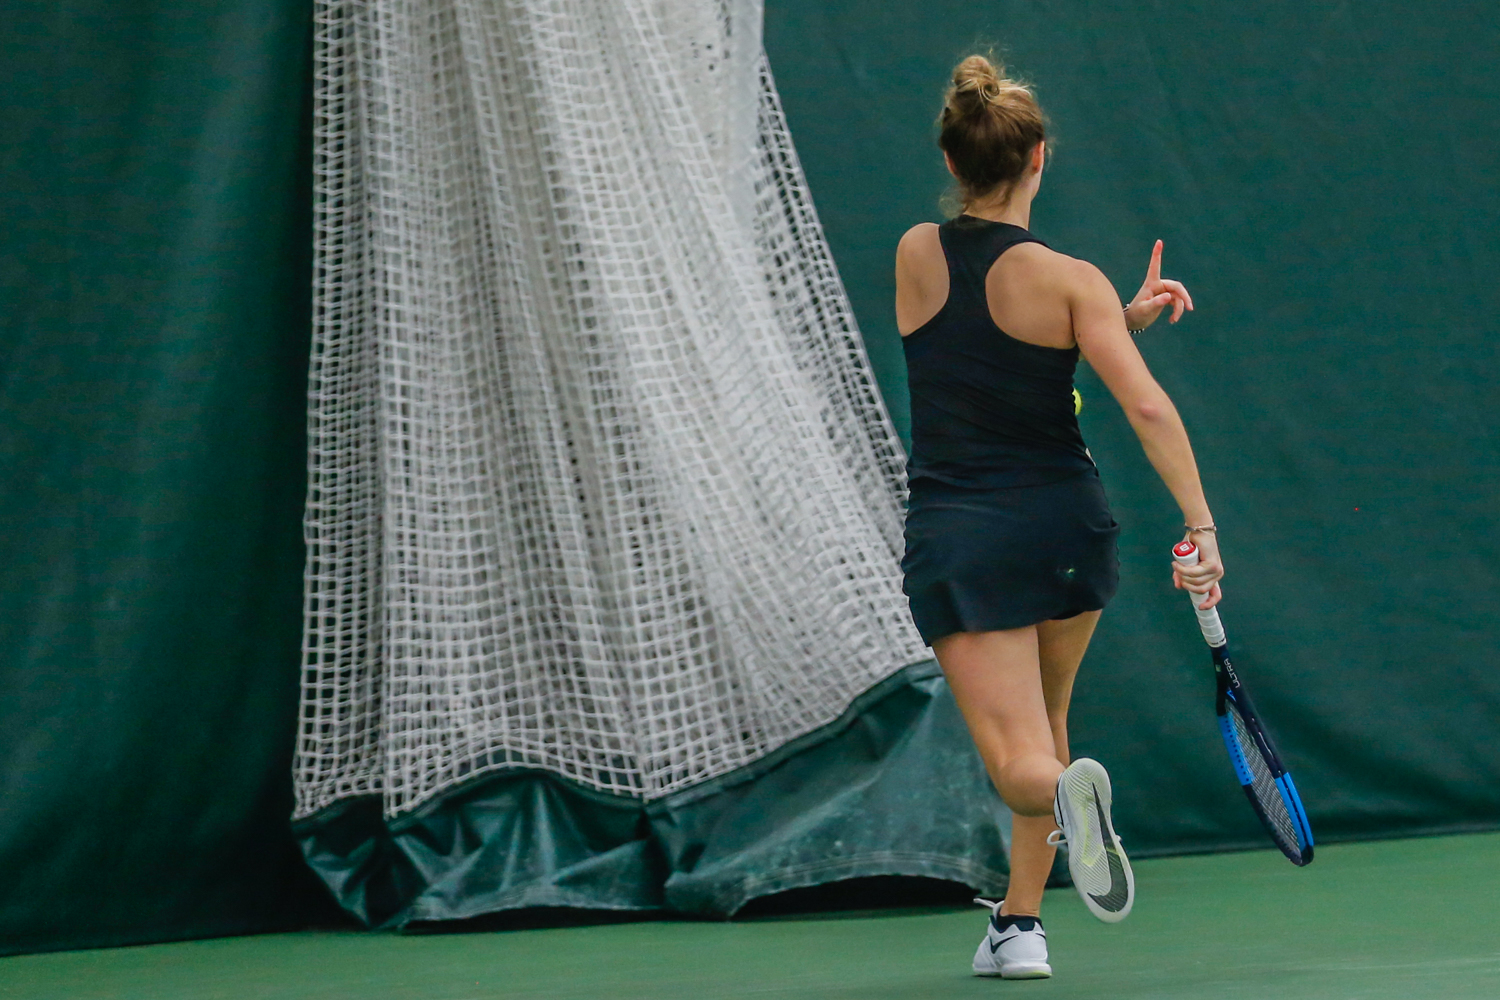 Iowa%27s+Cloe+Ruette+calls+a+ball+out+during+a+women%27s+tennis+match+between+Iowa+and+Depaul+at+the+Hawkeye+Tennis+and+Recreation+Complex+on+Saturday%2C+February+9%2C+2019.+The+Hawkeyes+defeated+the+Blue+Demons%2C+6-1.